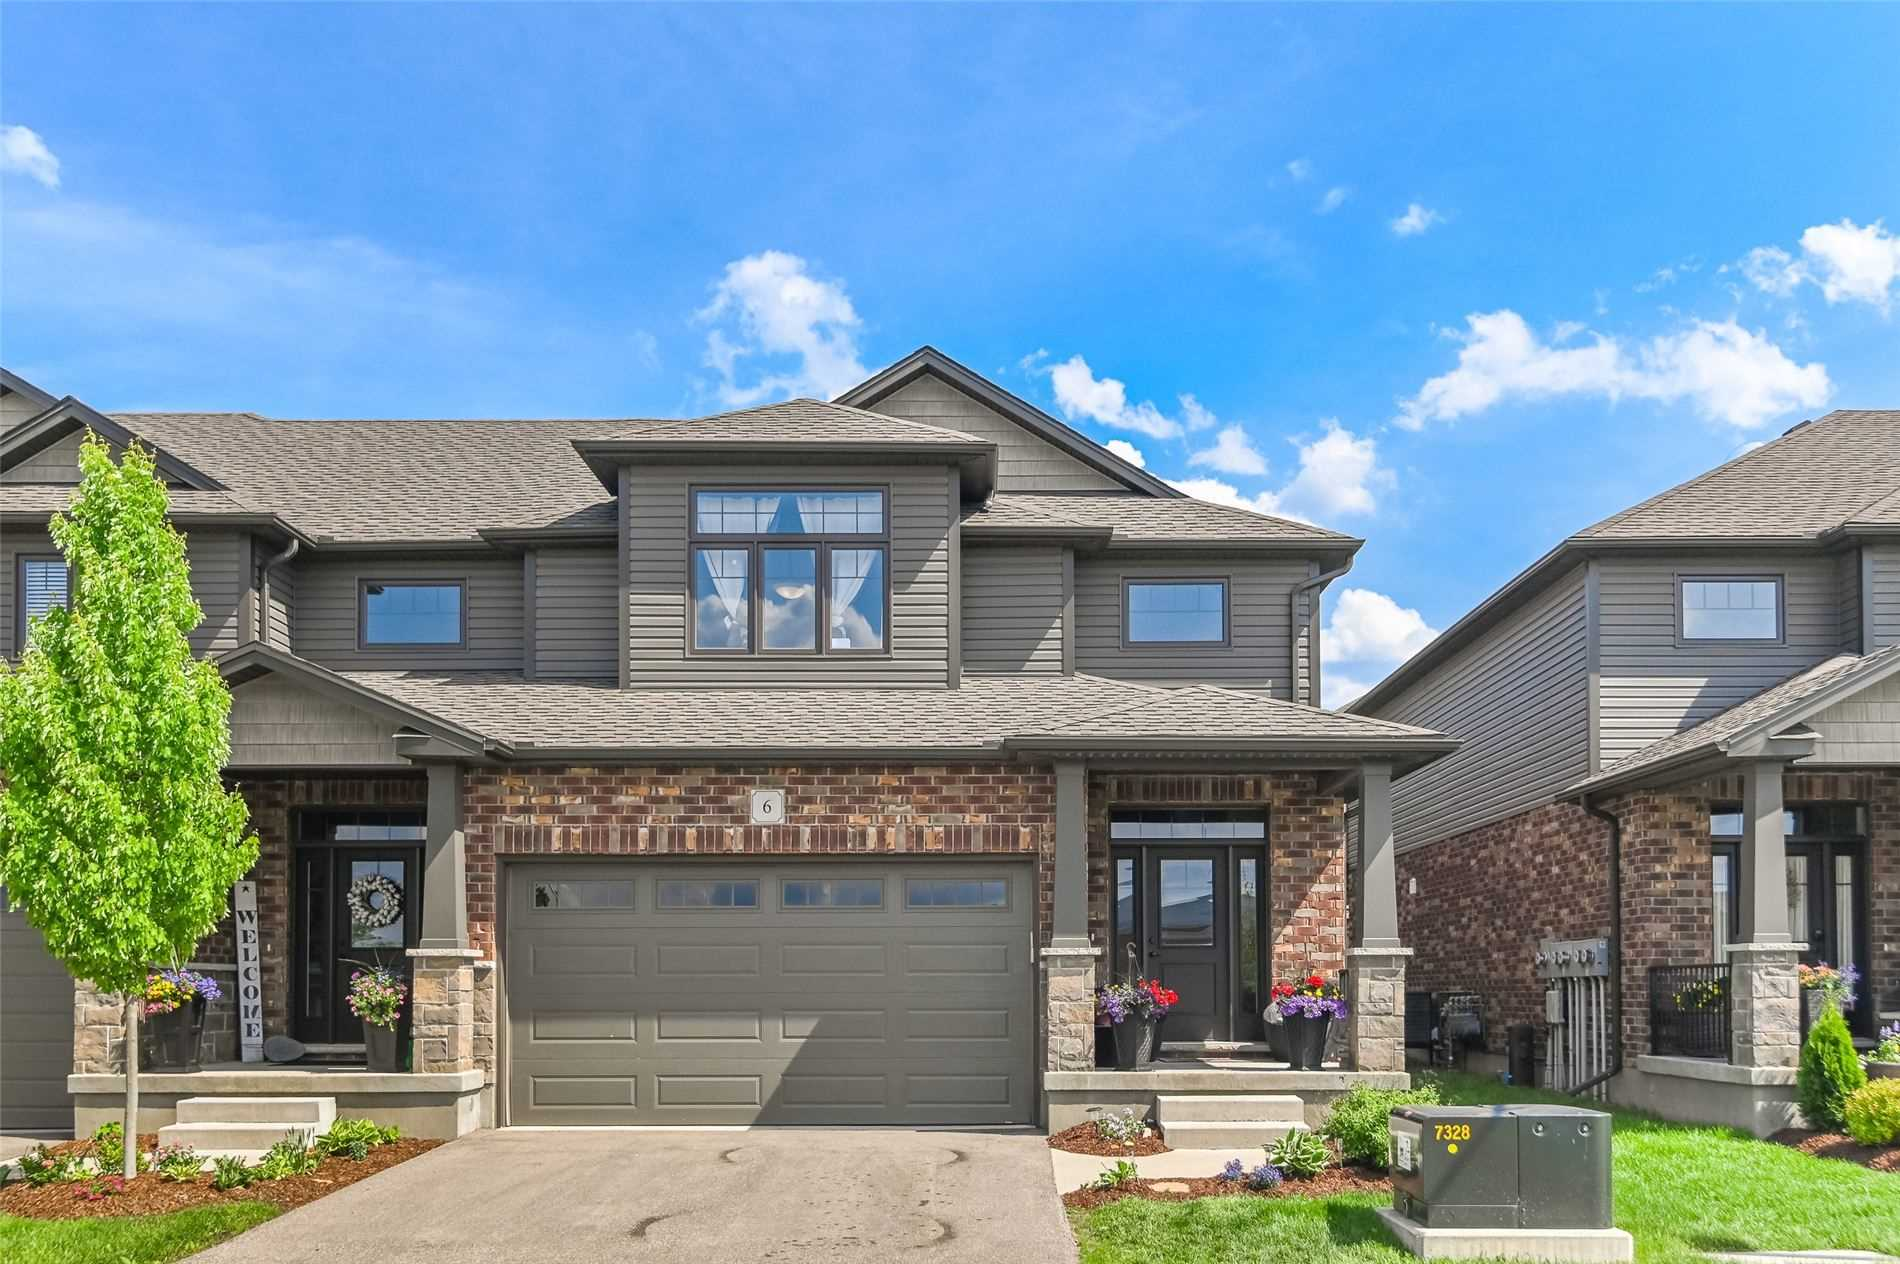 Stunning 3 Bedroom Bungaloft Townhouse W/Prime South-End Location!Great Room W/Gleaming Hardwood & 2 Large Windows.Open To Eat-In Kitchen W/Dark Cabinetry, Glass Tiled Backsplash, Granite Countertops, S/S Appliances & Breakfast Bar W/Seating.Main Floor Master W/Walk-In Closet & 4Pc Ensuite W/Oversized Tiled Shower & Vanity W/Double Sinks.2Pc Bath & Laundry Room.2nd Floor Offers 2 Huge Bedrooms W/Ample Closet Space & Hardwood Floors,4Pc Main Bath.